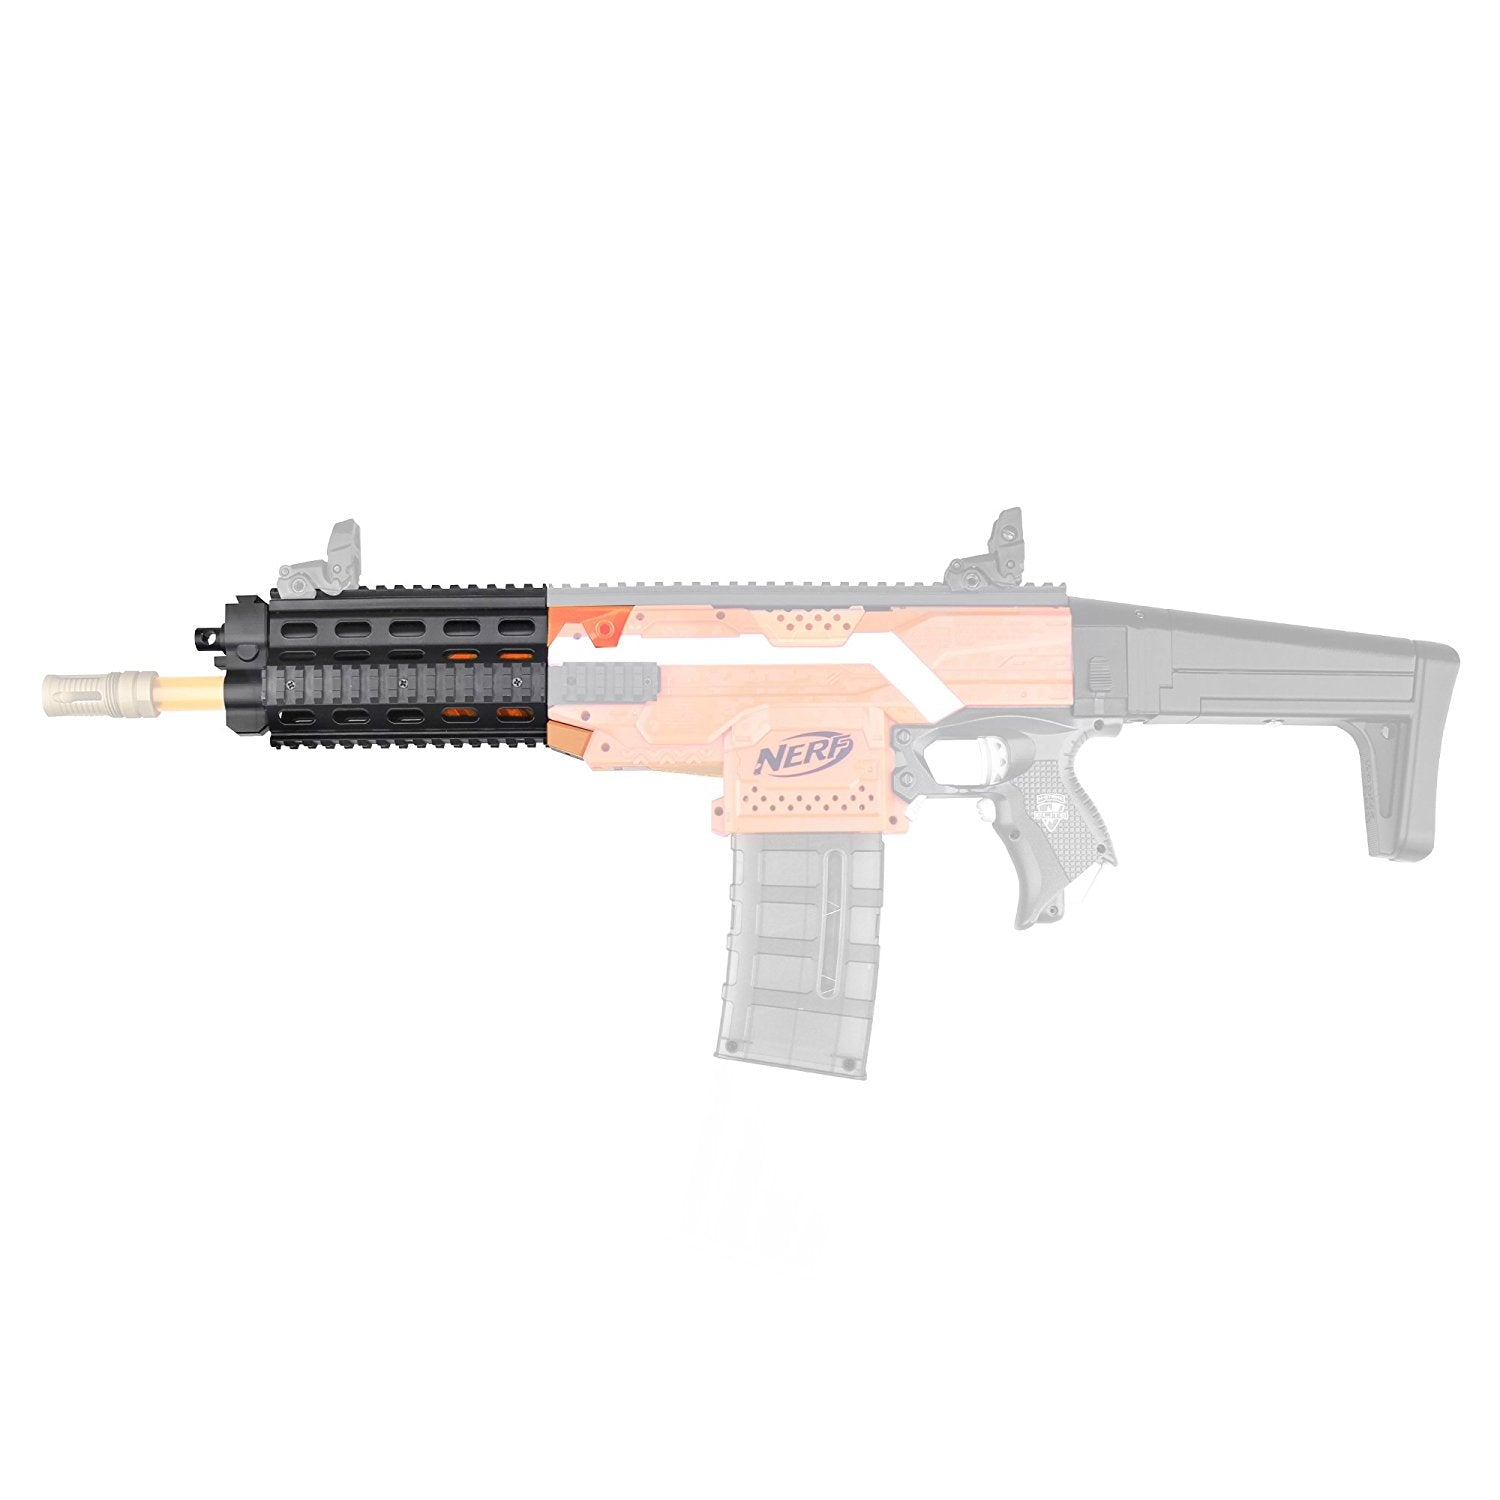 JGCWorker F10555 No.57 3D Printing Modularized Kit without Adaptor for Nerf N-Strike Stryfe - Nerf Mod Kits -Worker Mod Kits